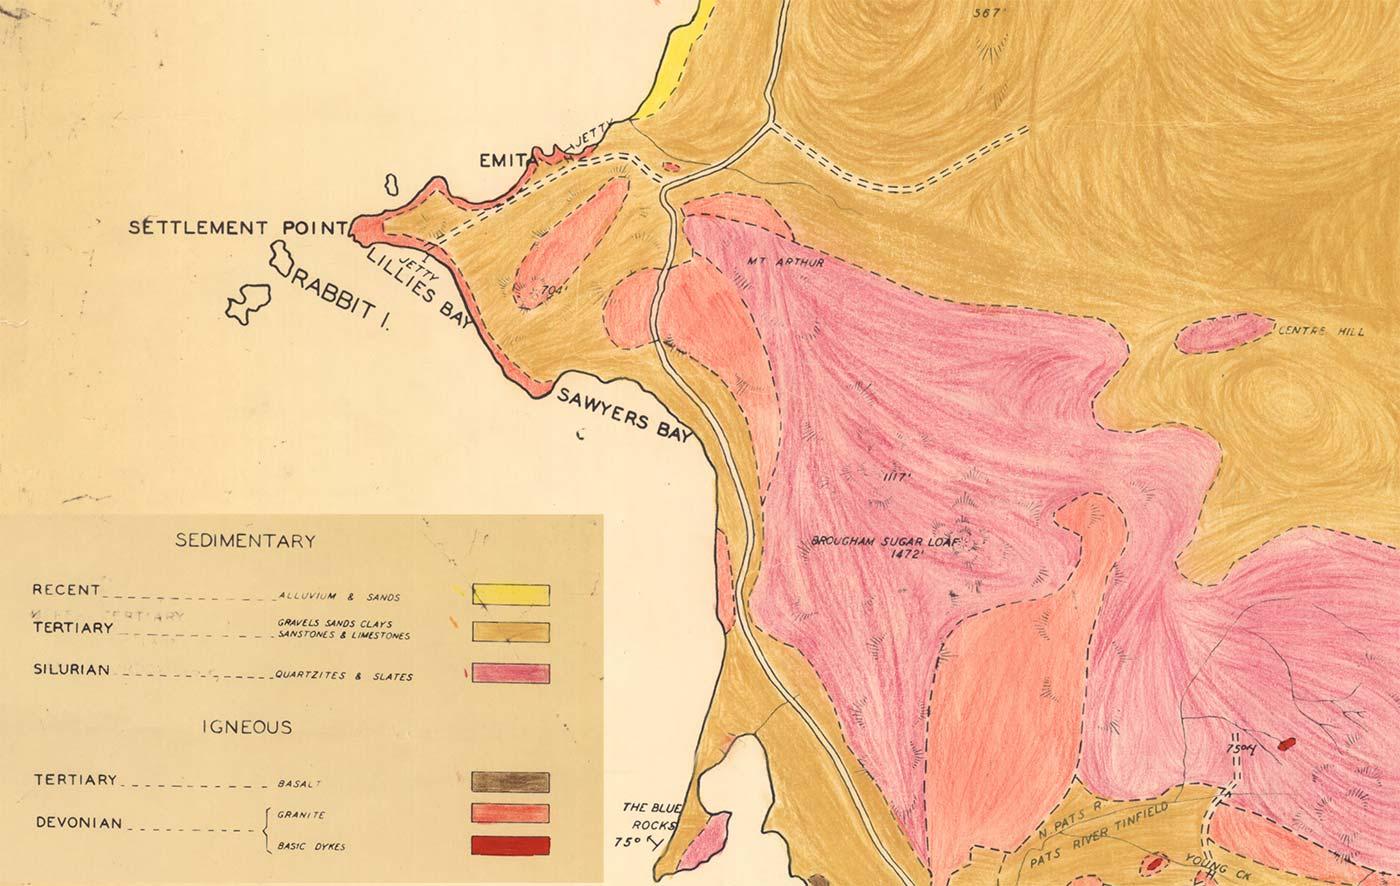 geological map detail of Settlement point area